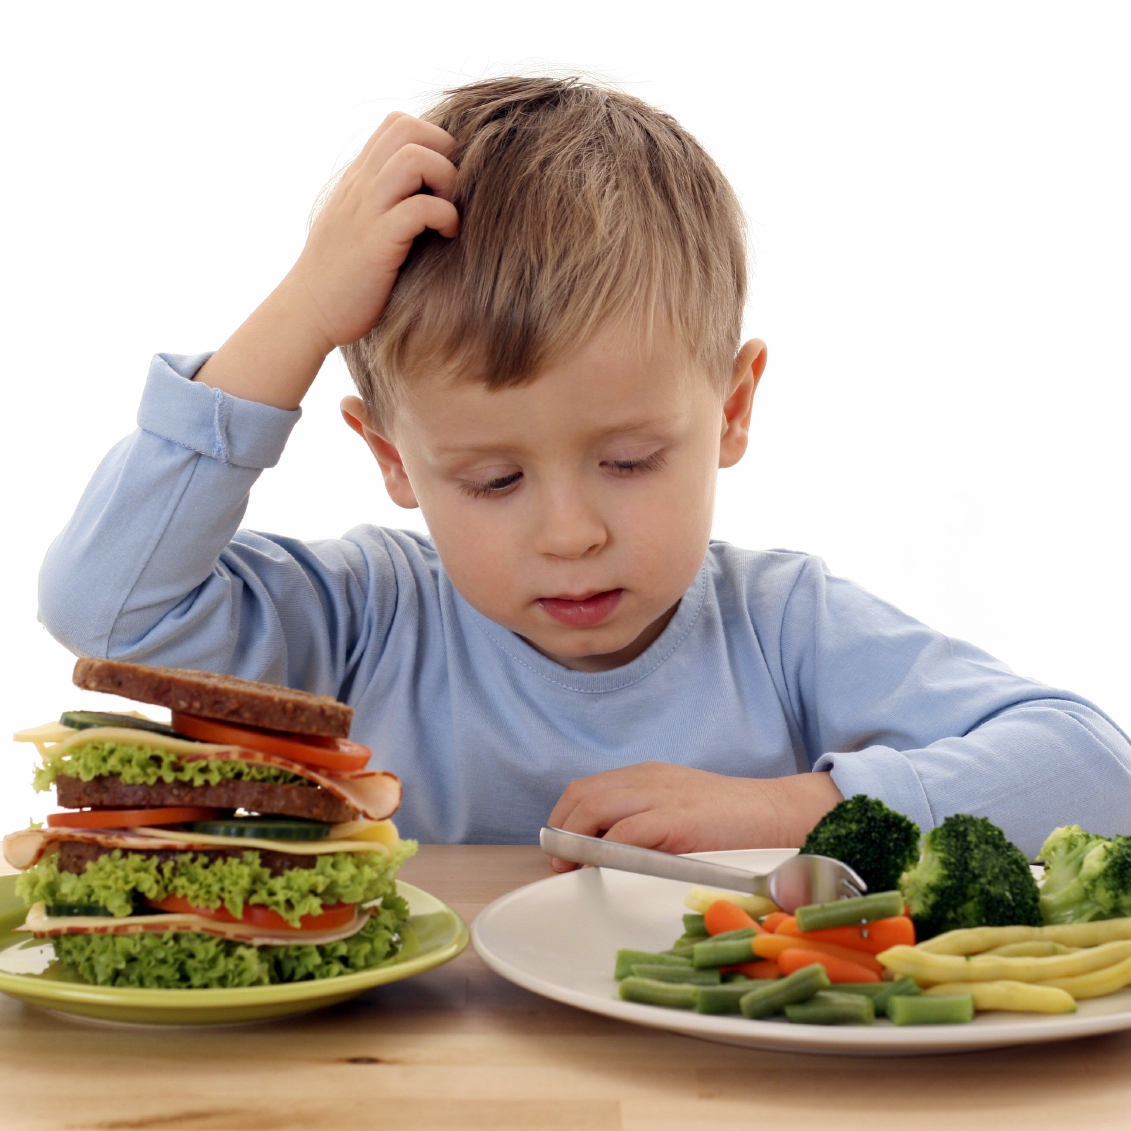 Healthy Foods and Children